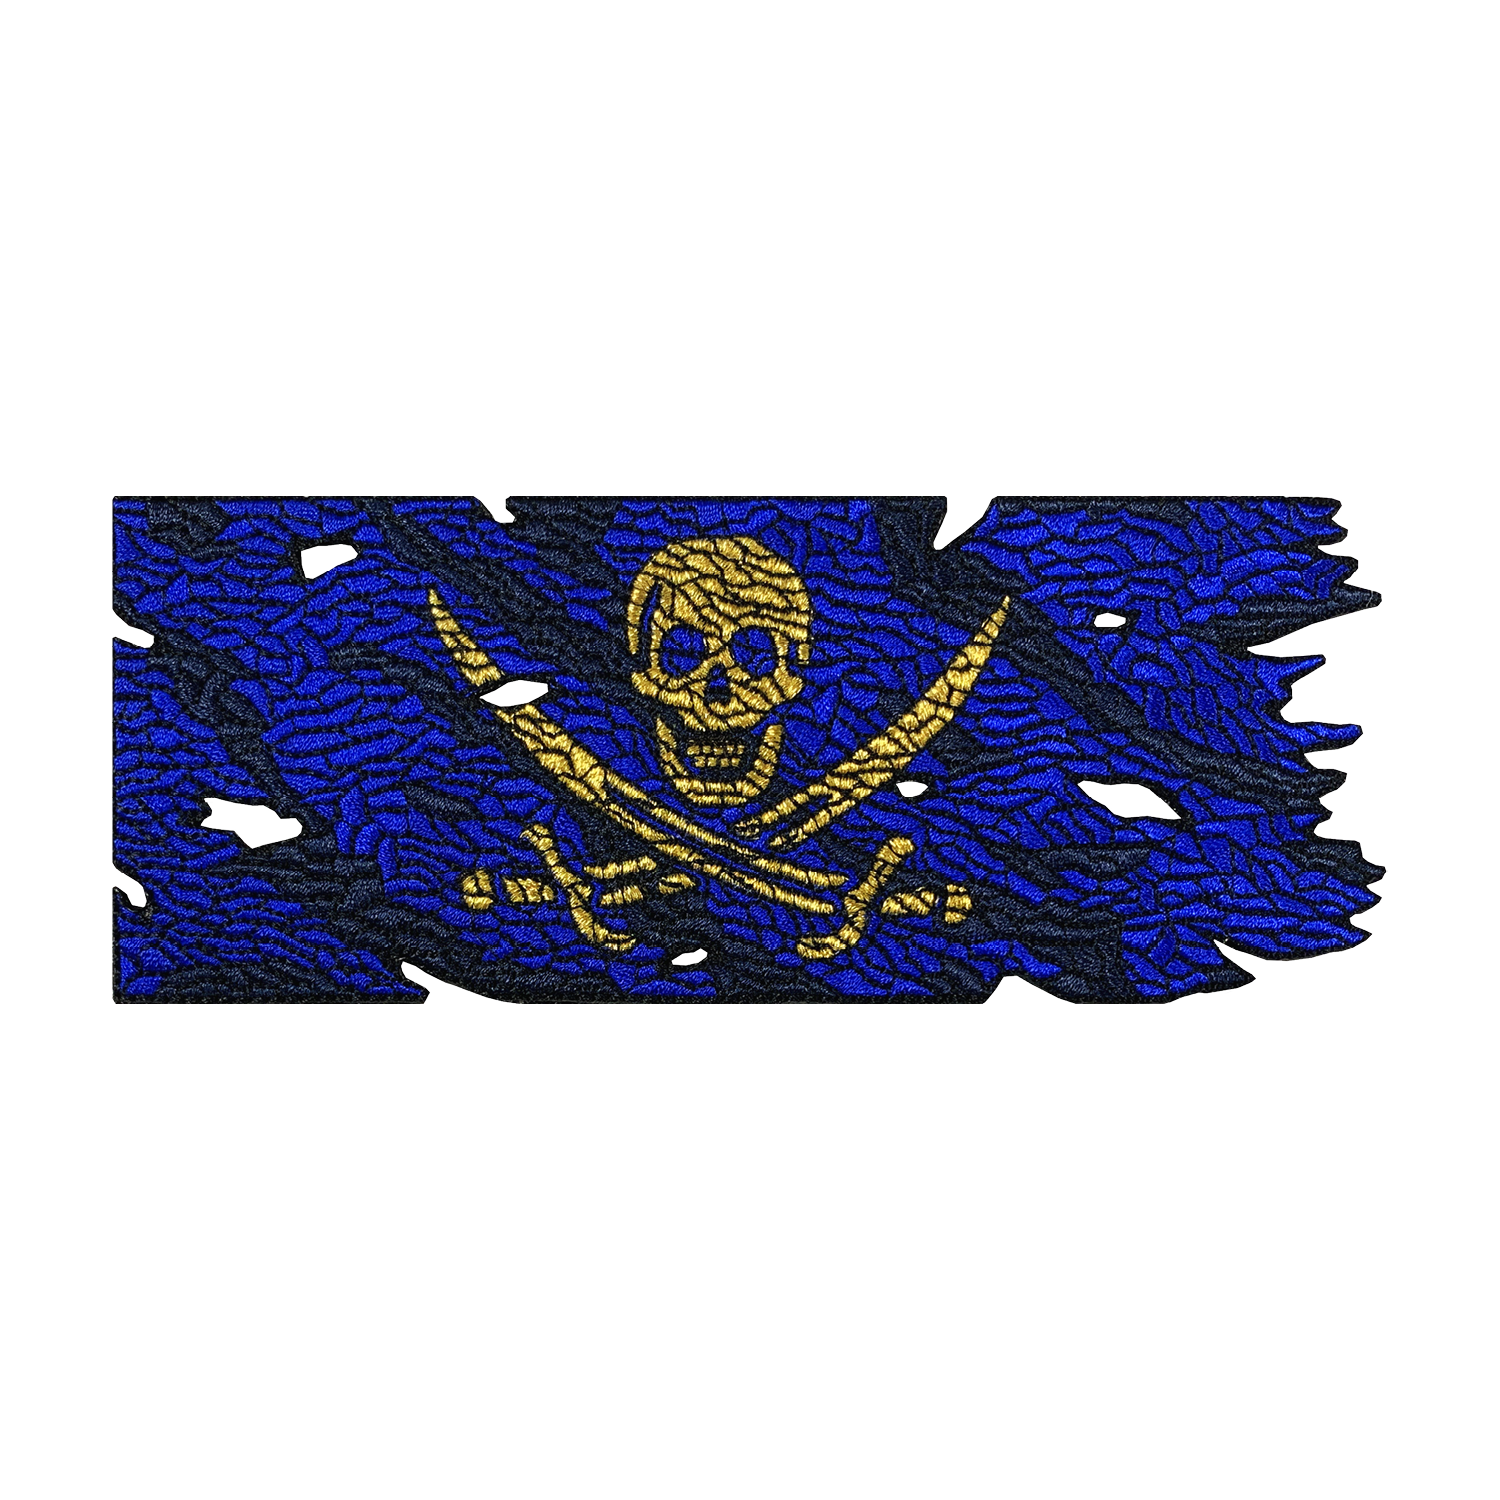 Pirate Flag v1.5 - Blue Jack Patch